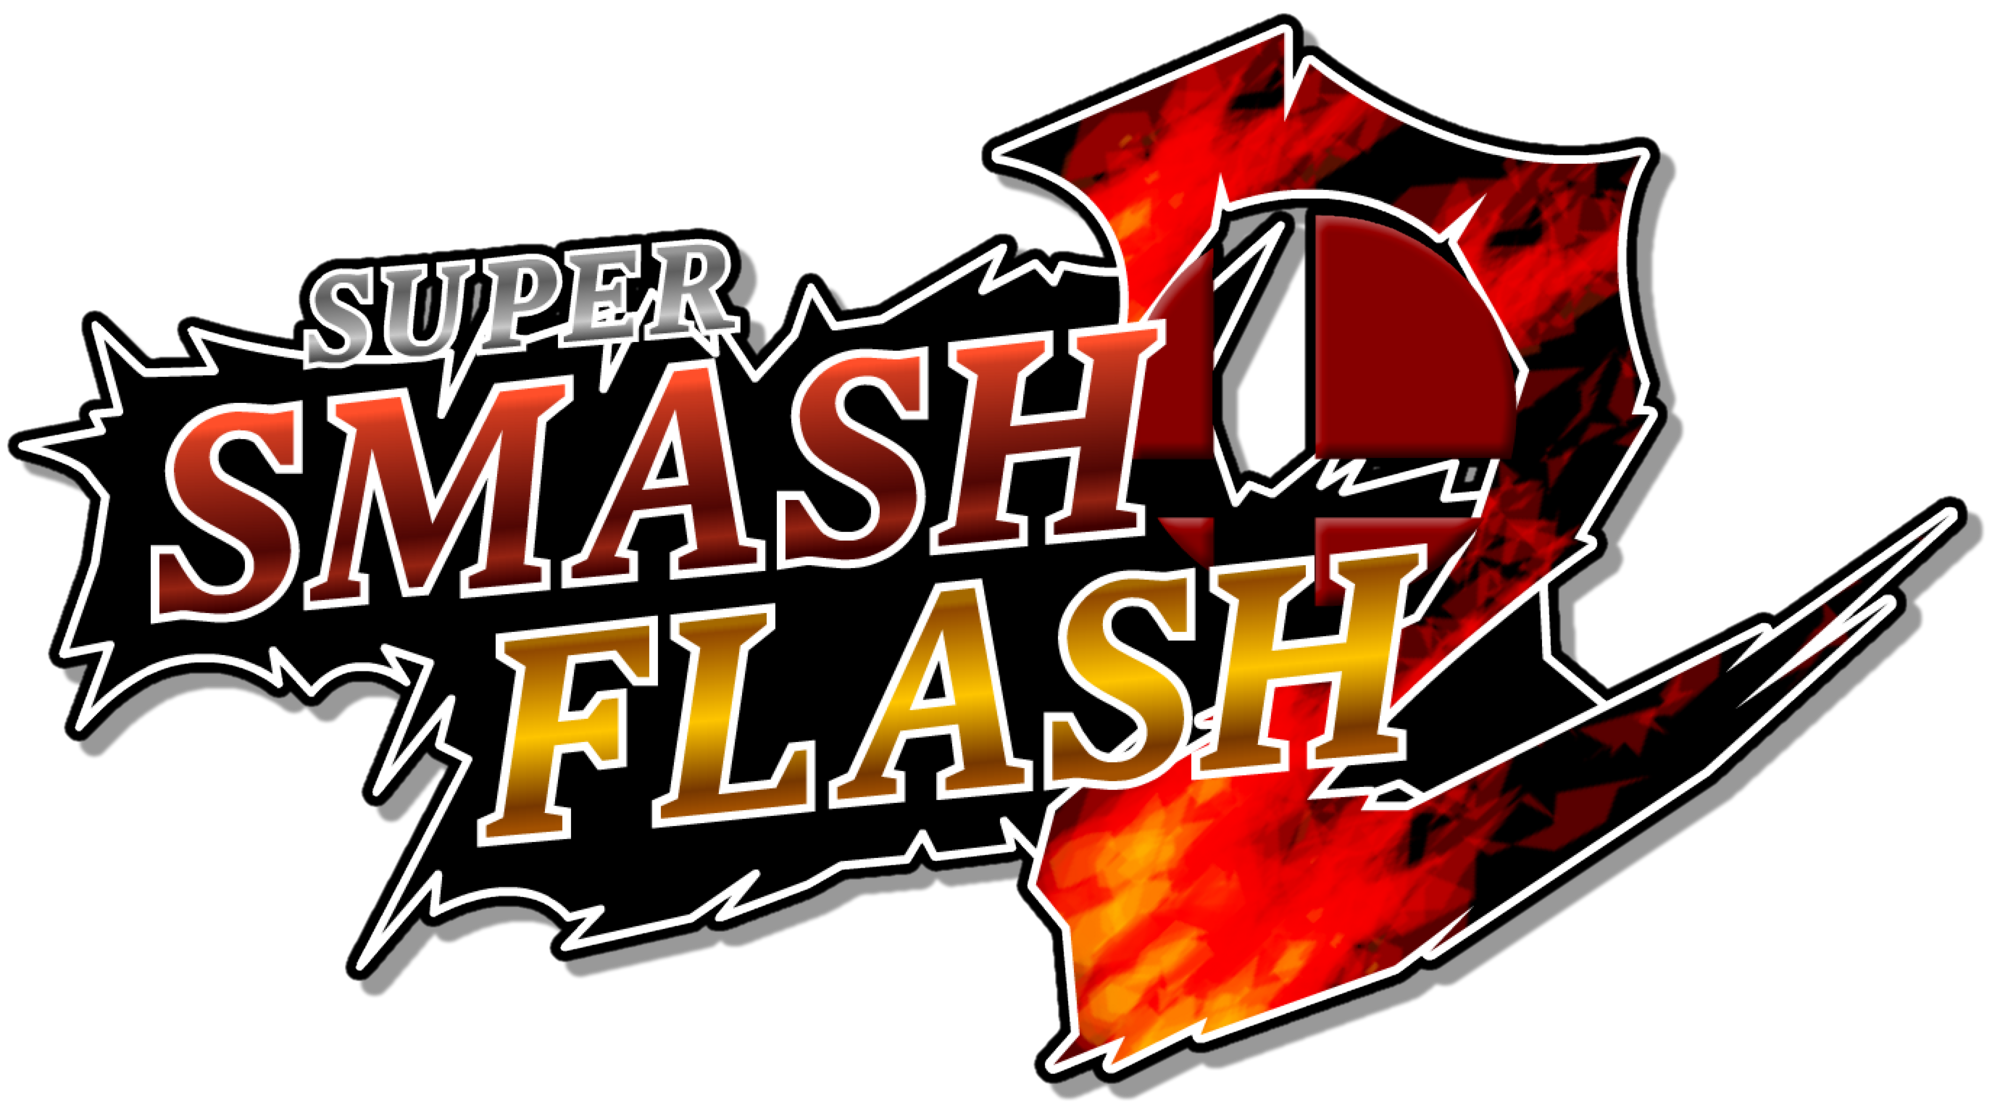 Super Smash Flash 2 Mcleodgaming Wiki Fandom Powered By Wikia